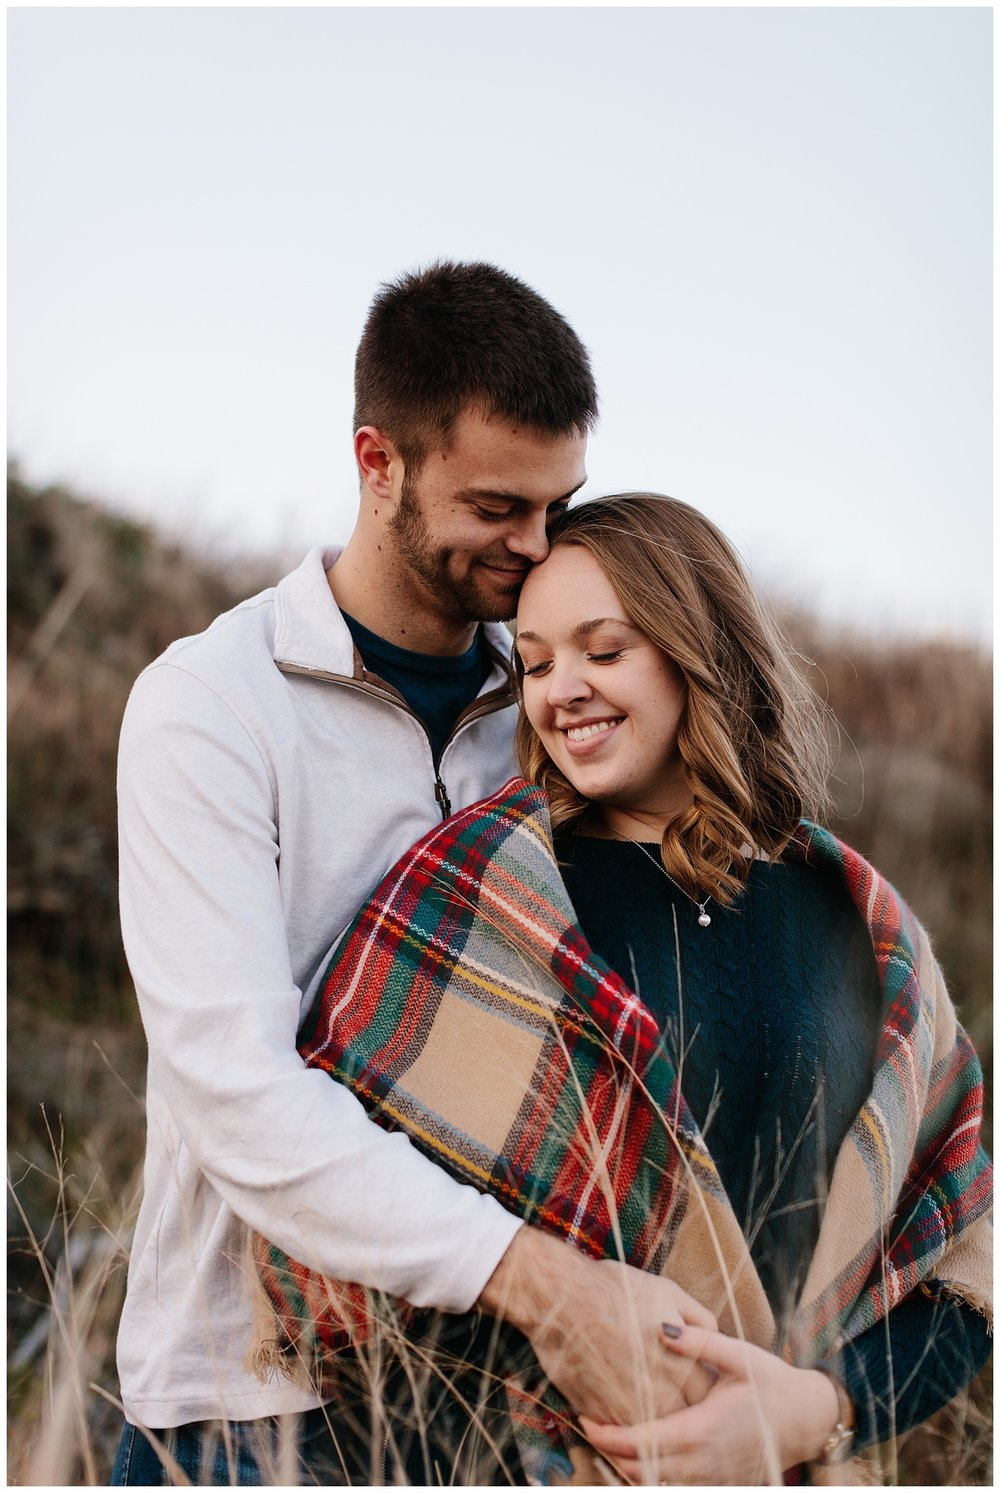 jay_kalyn_beavertail_beach_winter_engagement_session_jamestown_rhode_island15.jpg